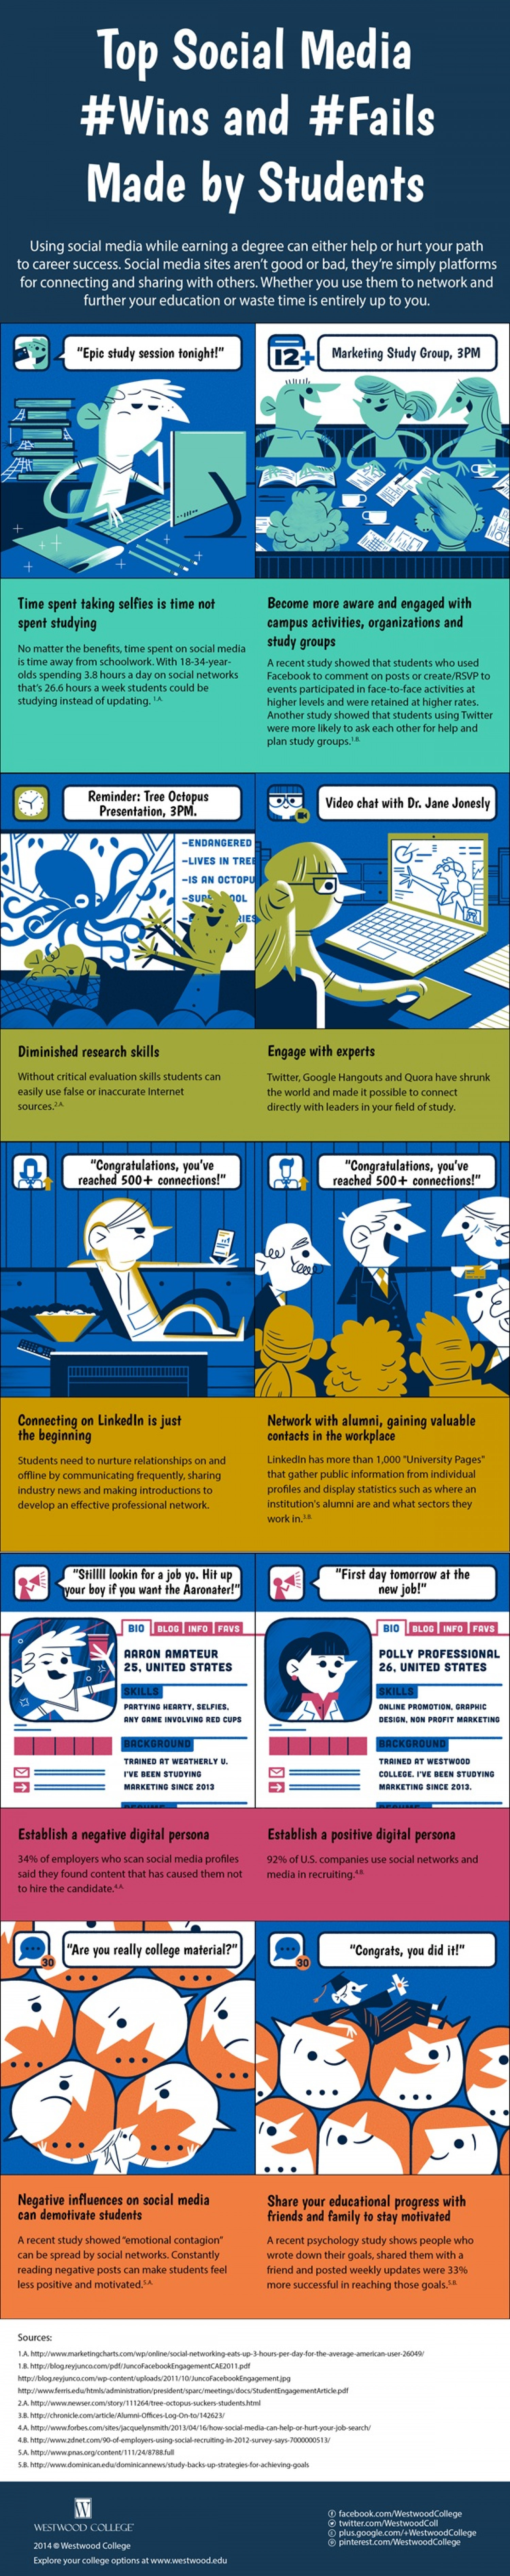 Social Media Wins and Fails by Students Infographic